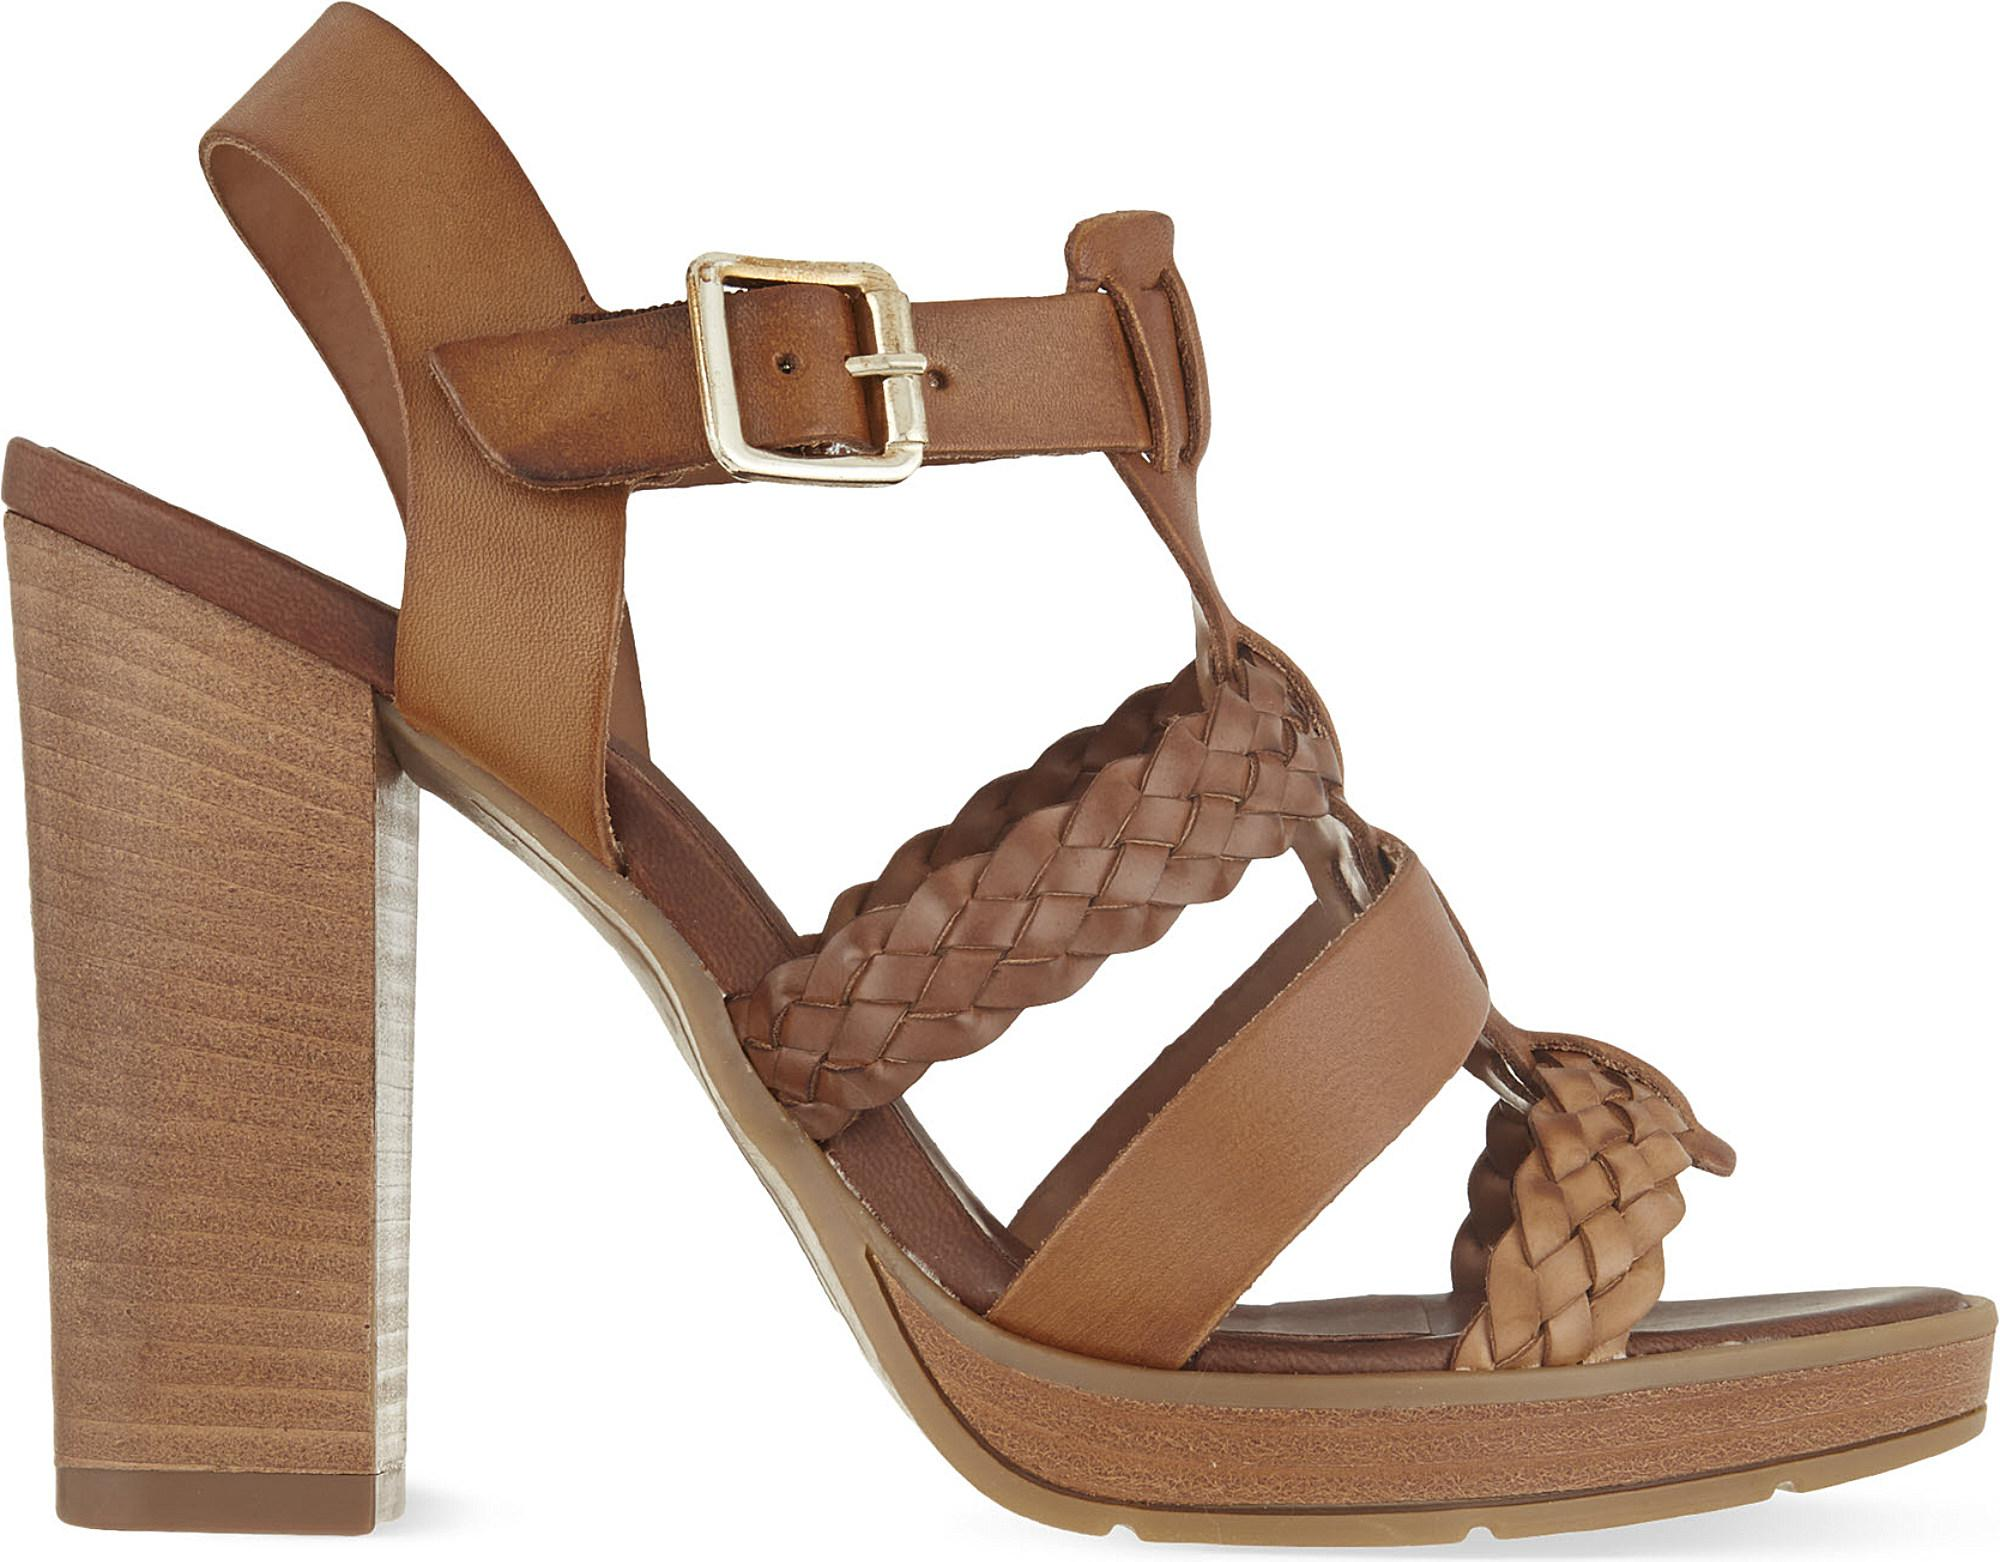 Carvela Krill - tan block heeled sandals Perfect Best Prices For Sale Buy Cheap Shopping Online Shopping Online Cheap Online UmUf7